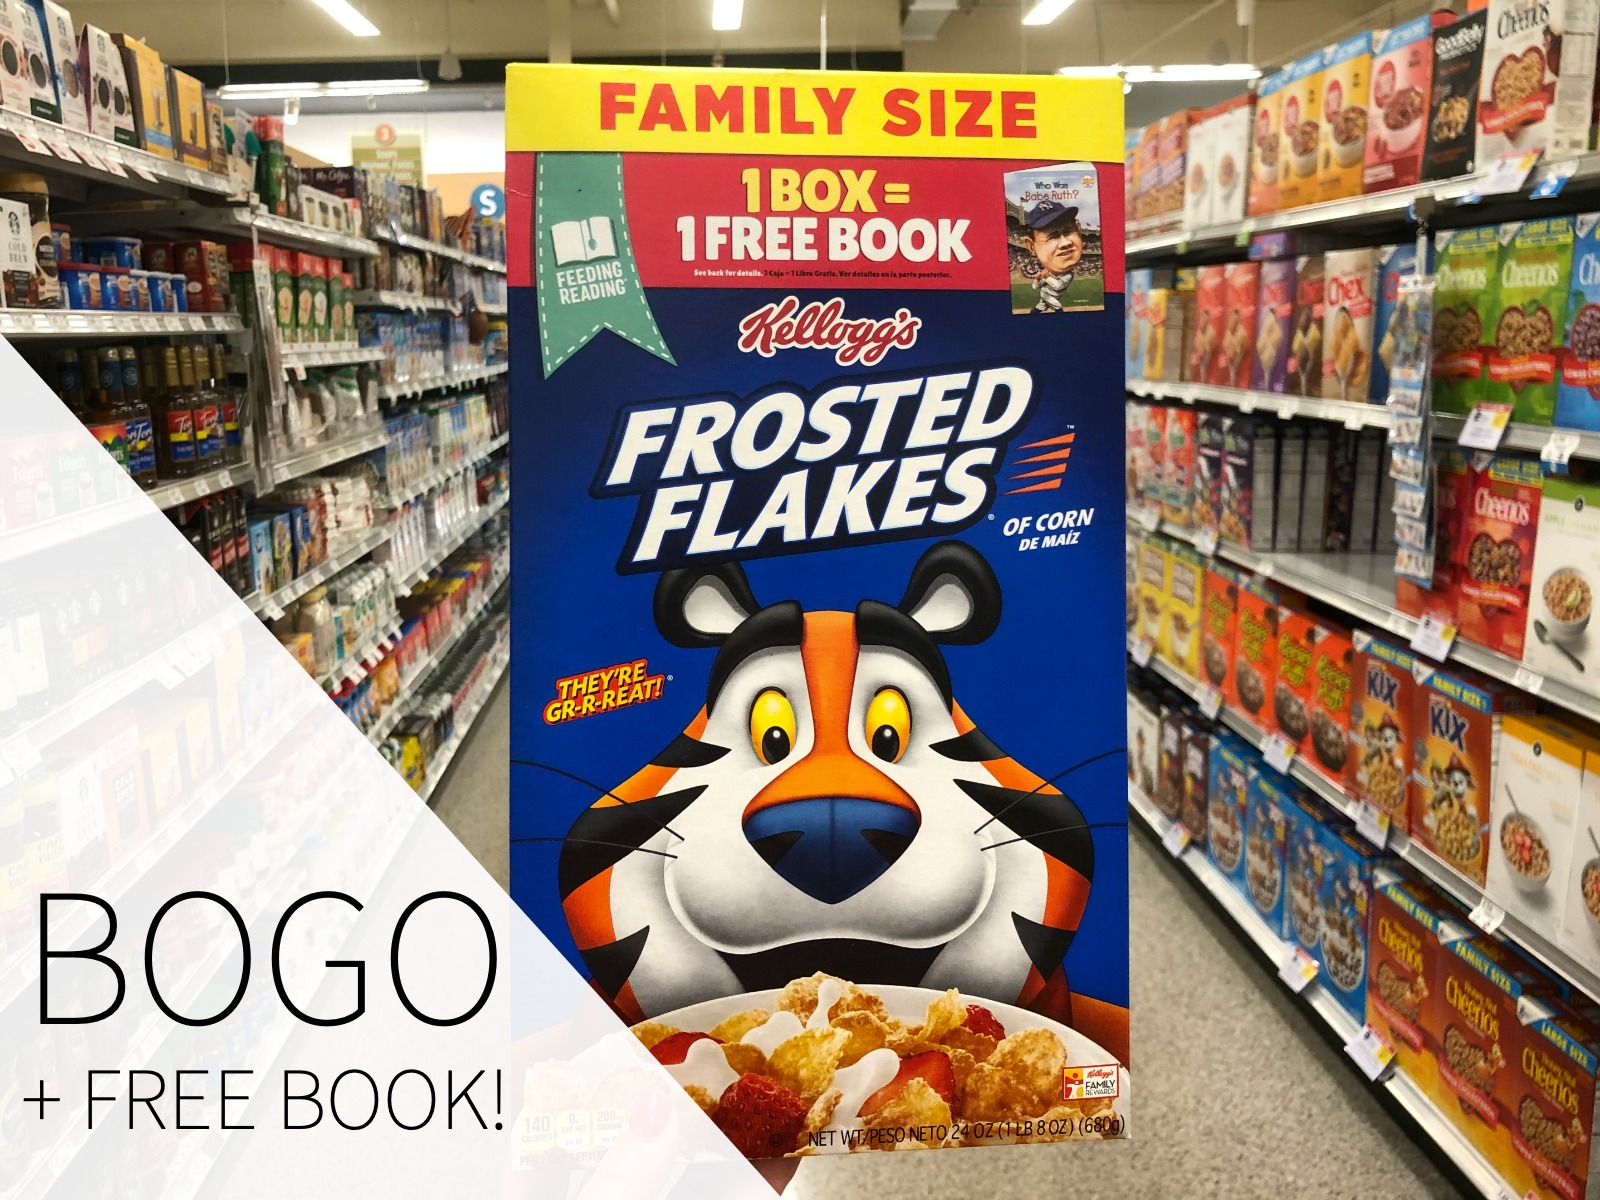 Get A Great Deal On Delicious Kellogg's Cereals & Get A Free Book With The Feeding Reading Program! on I Heart Publix 1